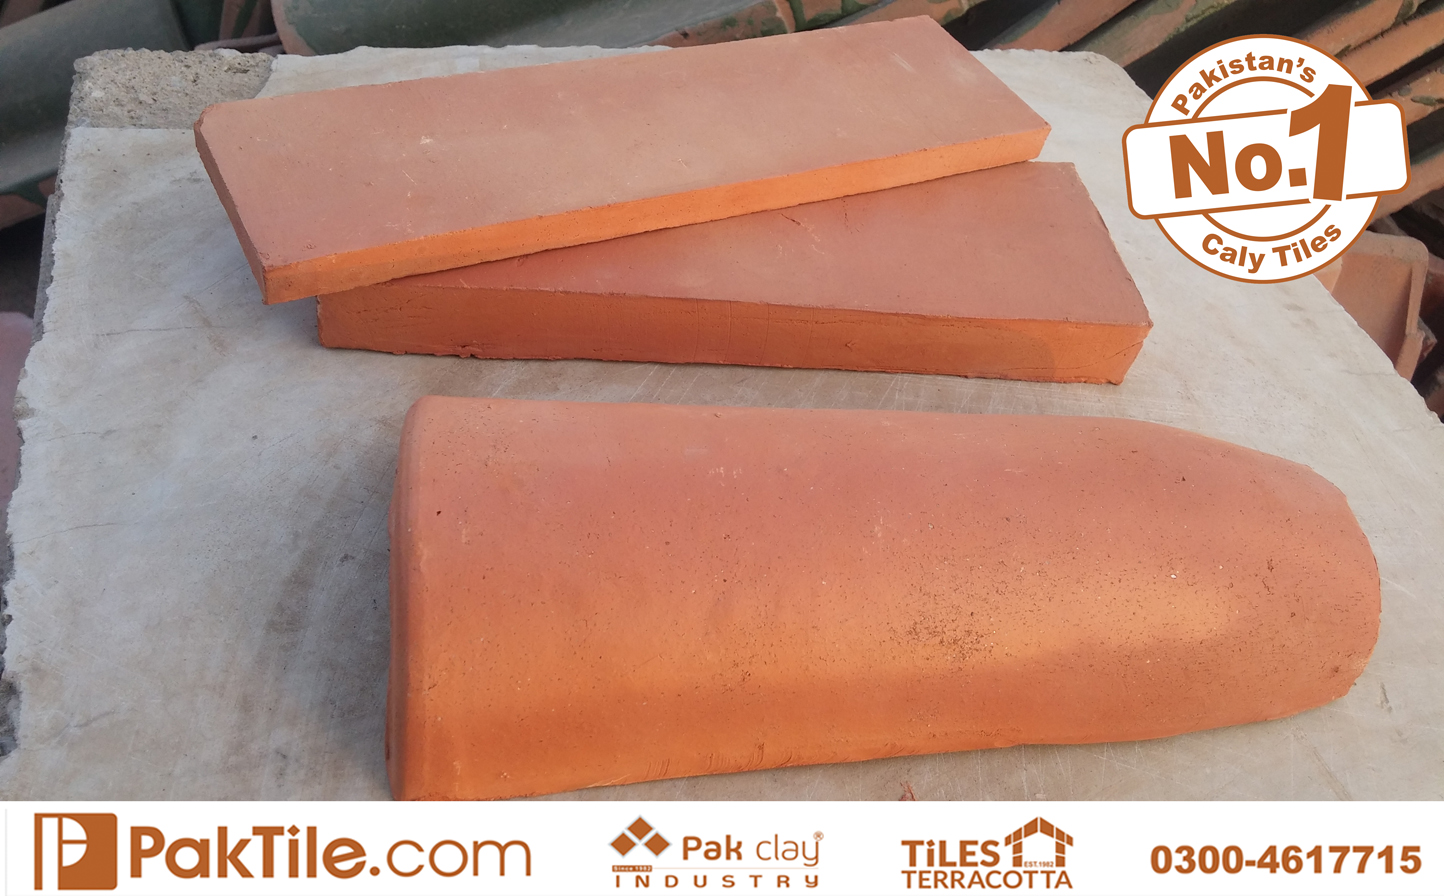 Terracotta Face Tiles Designs Gas Bricks Rates in Pakistan Images